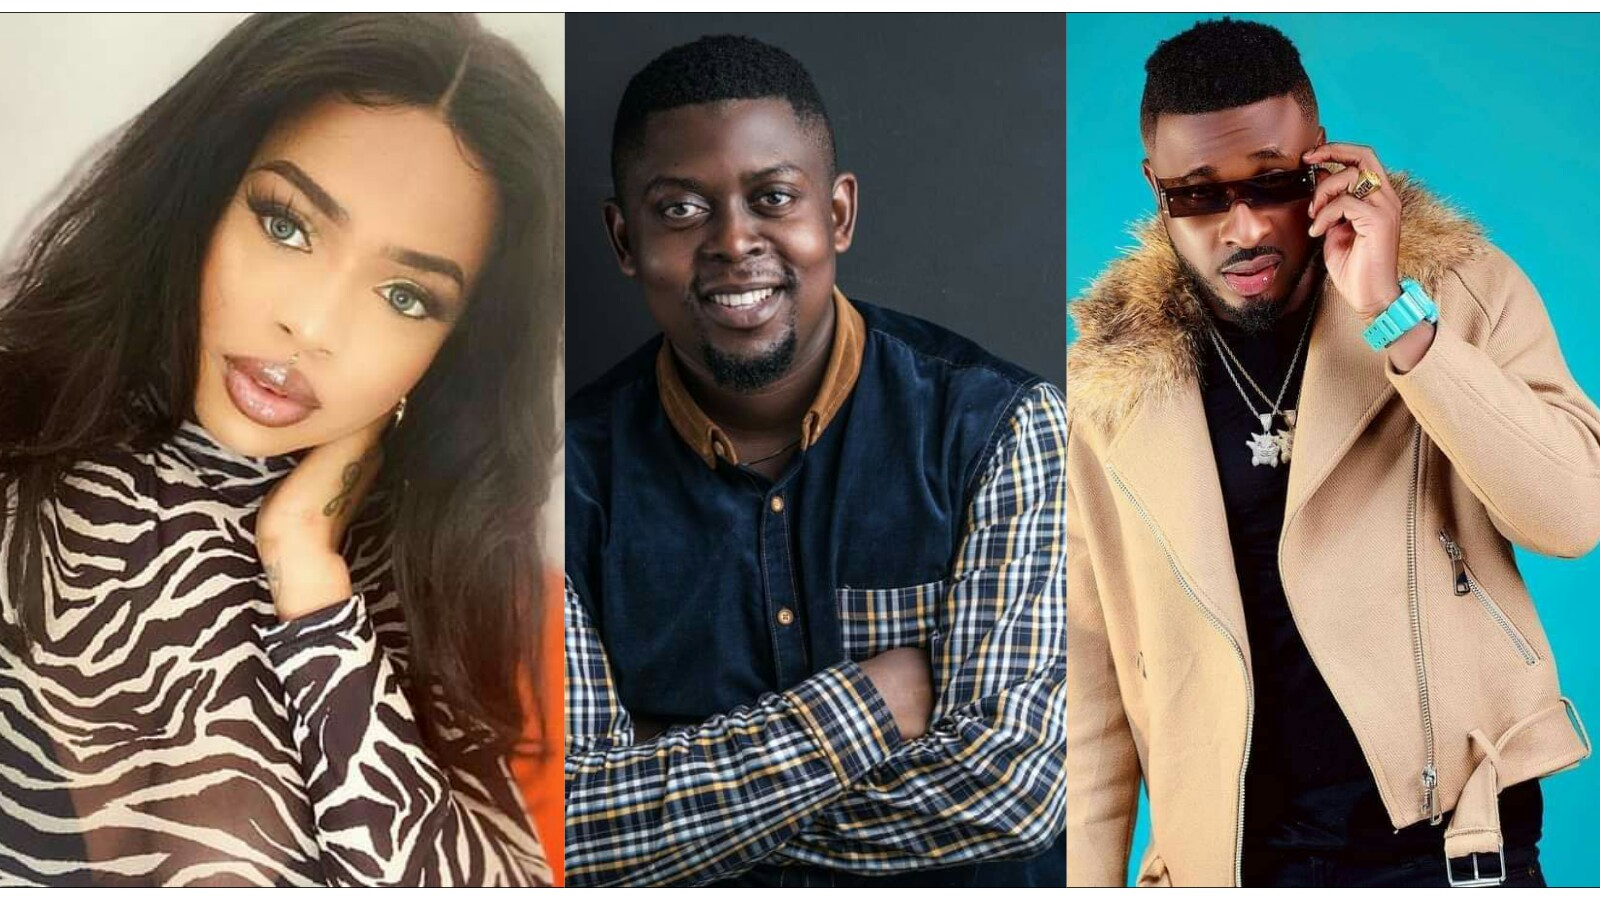 Tzy Panchak, Blanche Baily And Prince Enobi Engaged In A Social Media Battle Over Music Shows In Cameroon